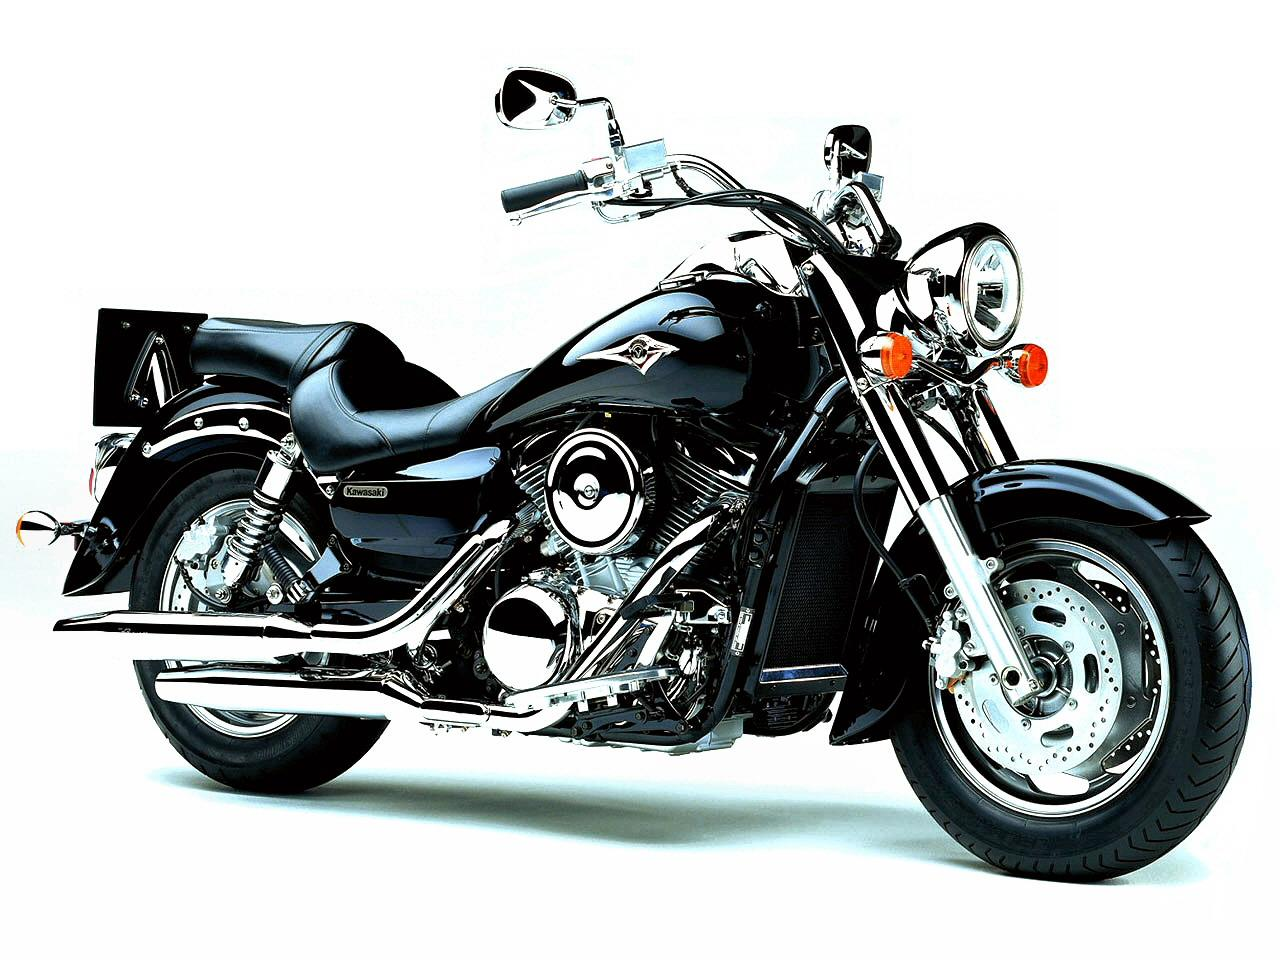 Cool Motorcycle 7714 Hd Wallpapers in Bikes   Imagescicom 1280x960